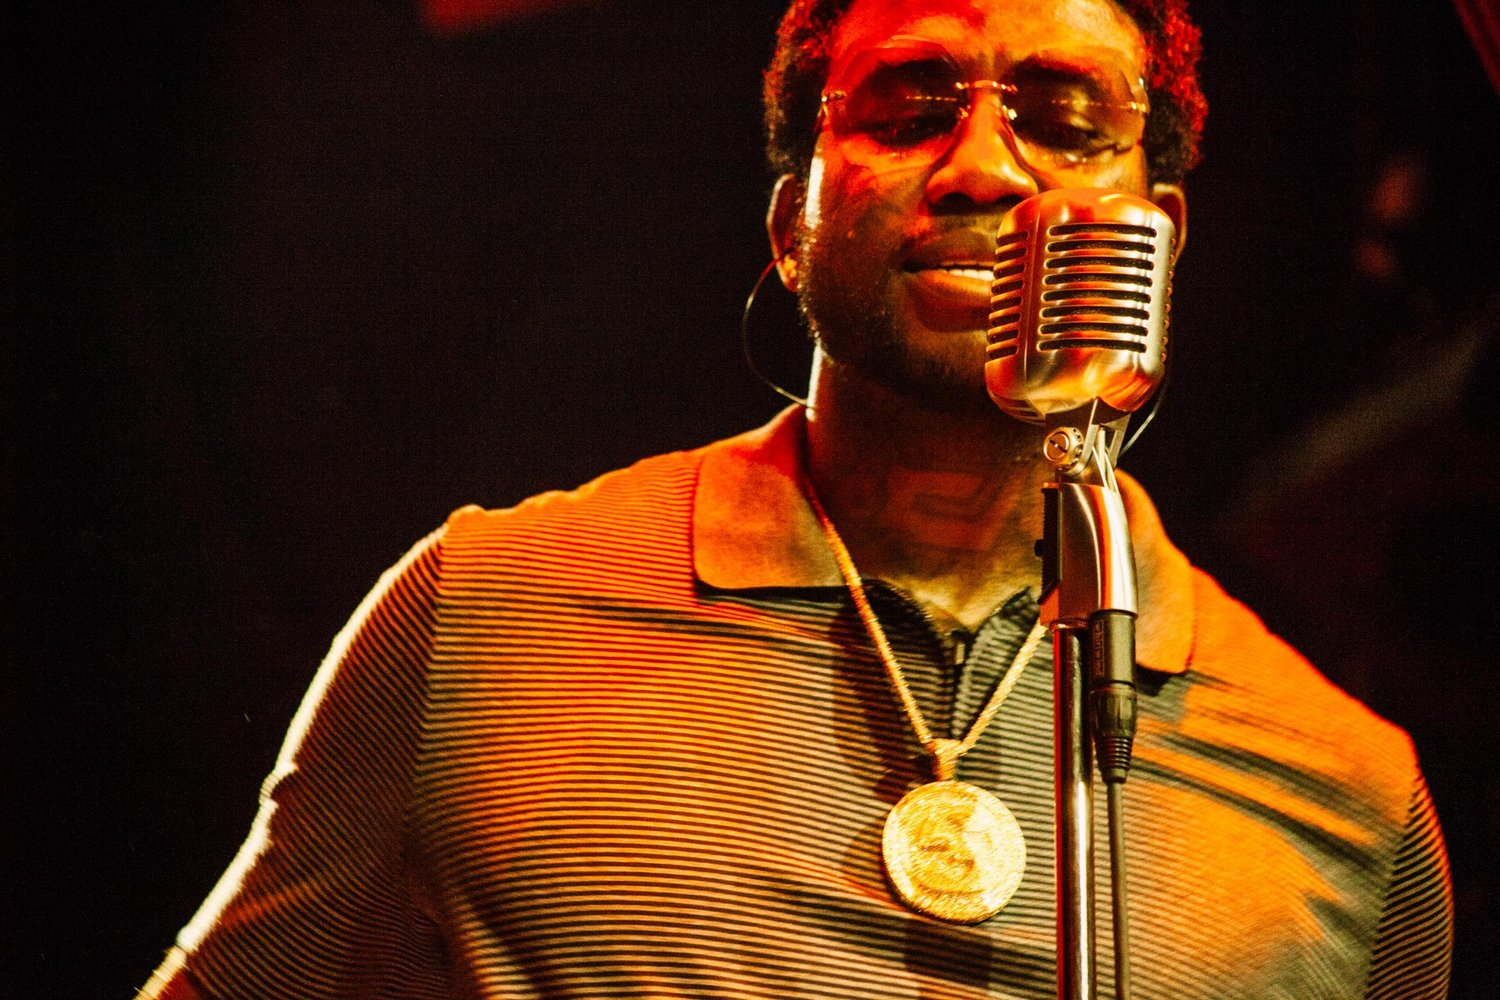 gucci-mane-performing-a-live-concert-in-new-york-city